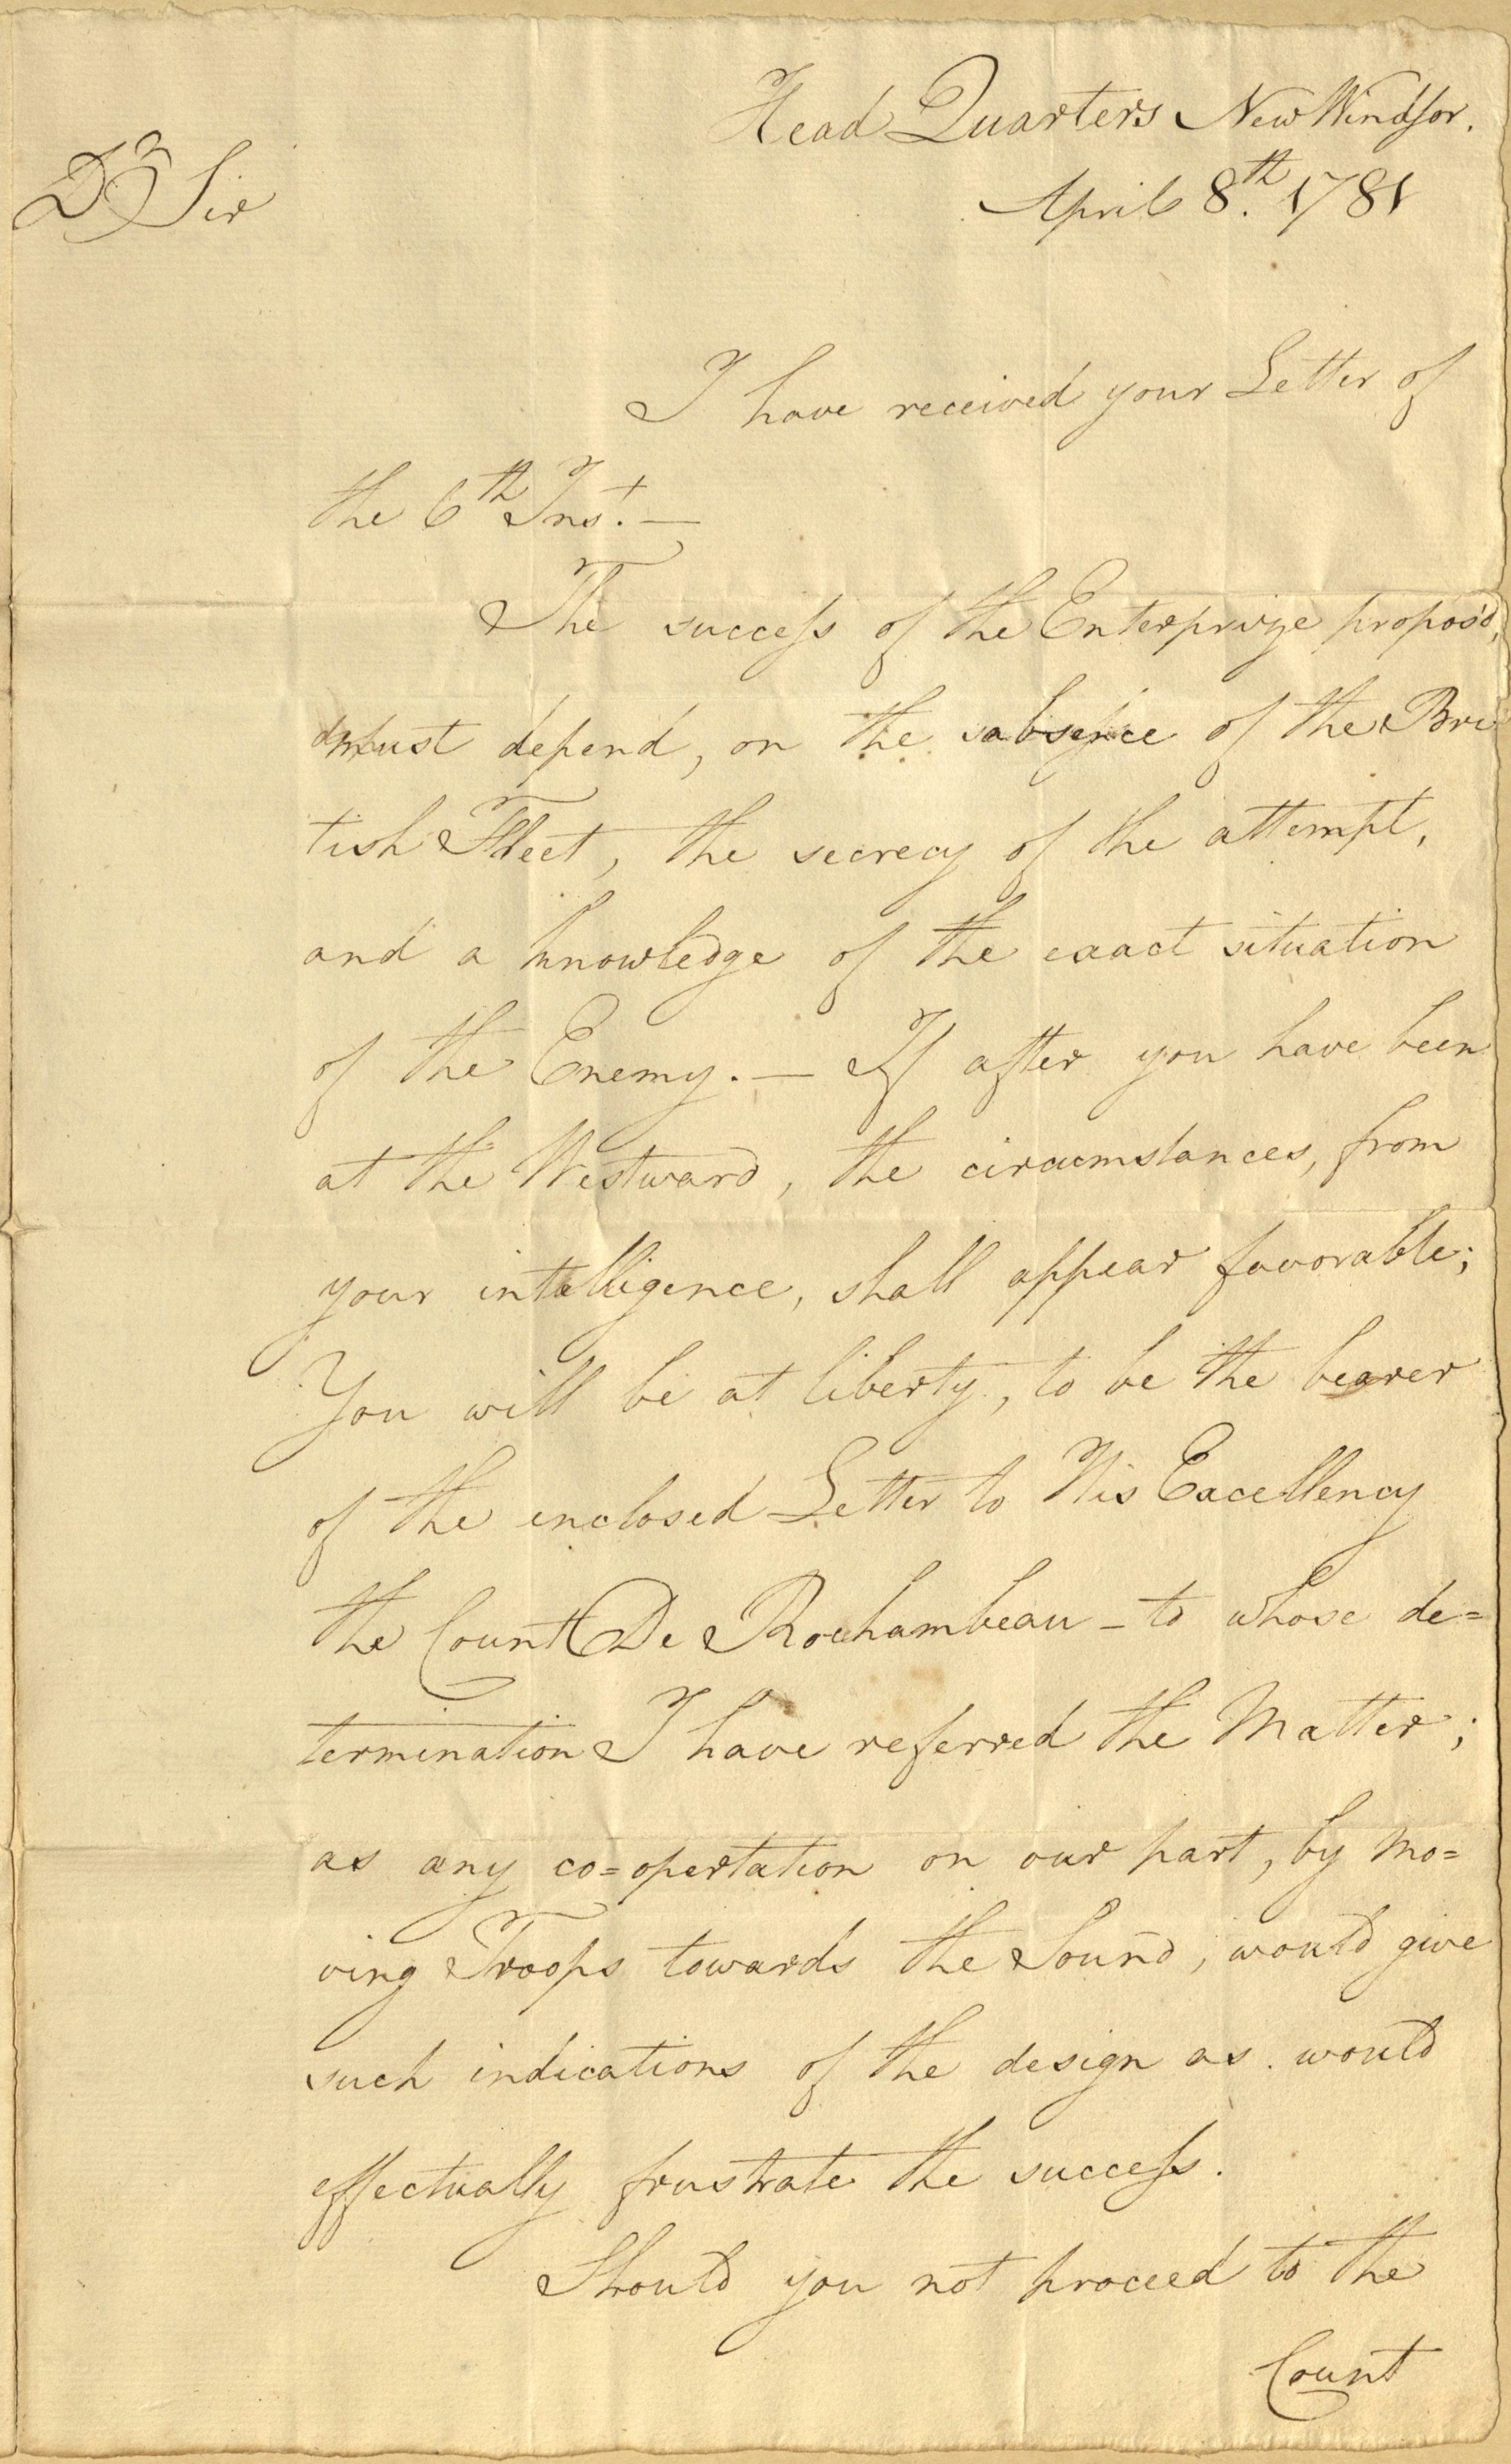 From George Washington to Benjamin Tallmadge, 8 April 1781 - Gift of Alexander B. Trevor, direct descendant of Benjamin Tallmadge, 2015.